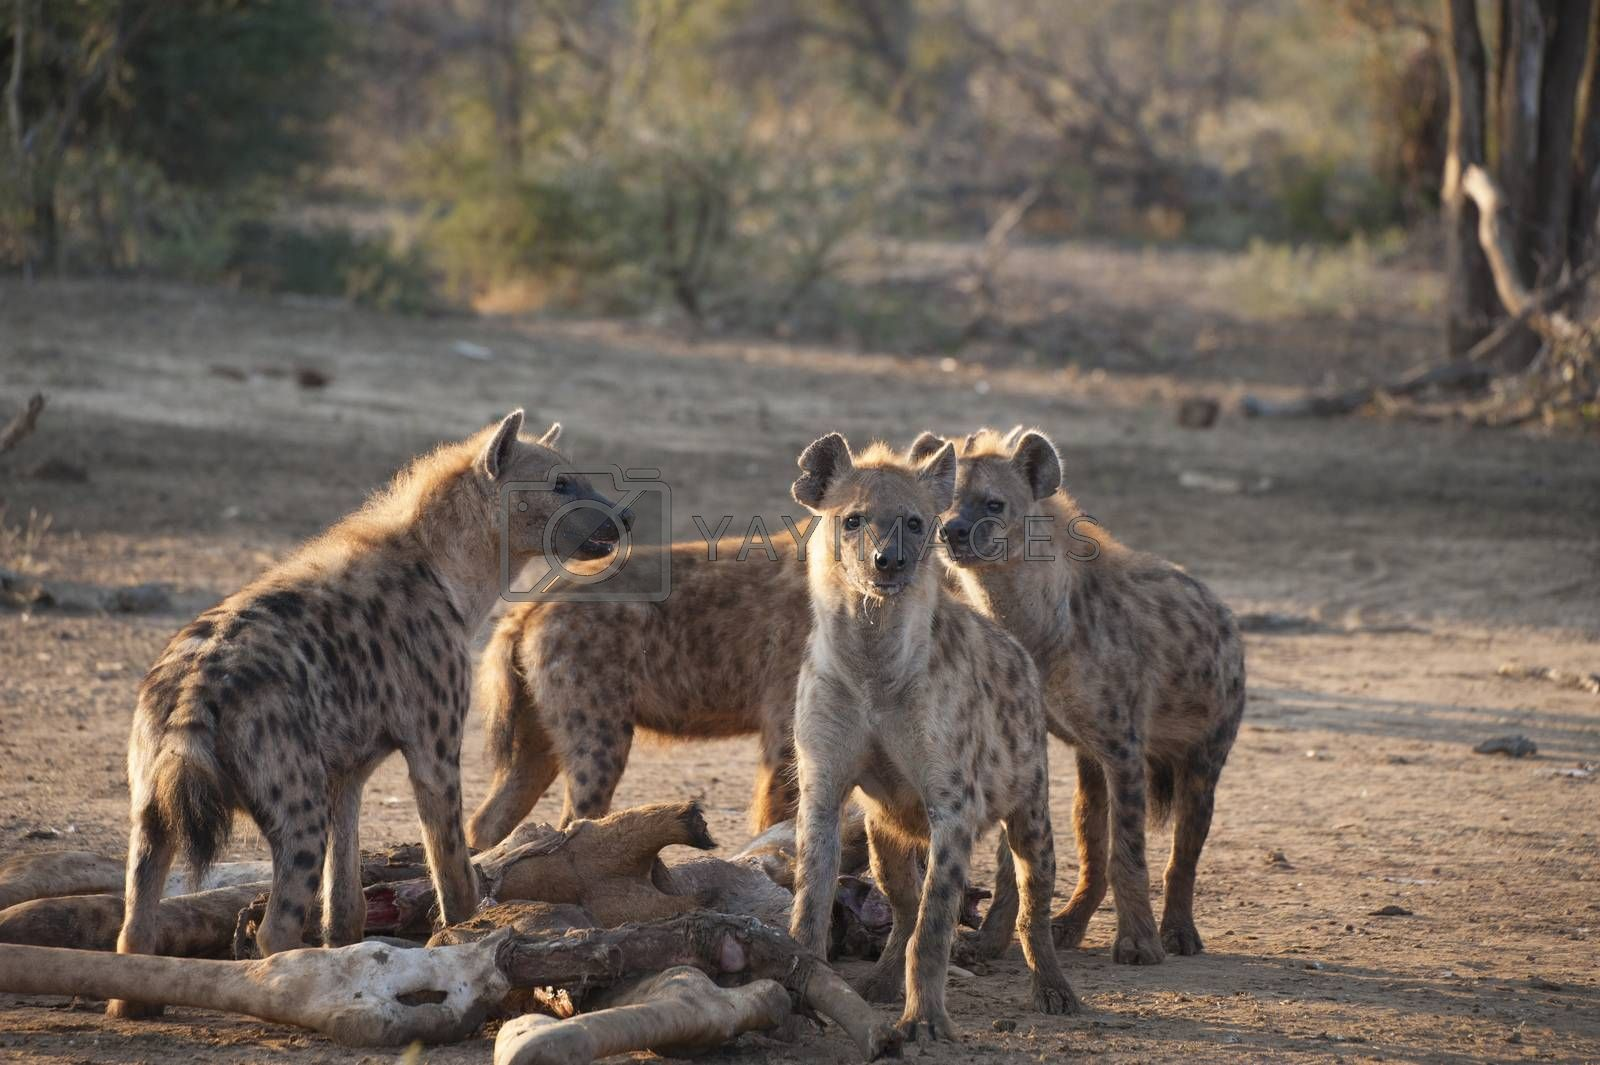 Group of four hyenas eating a dead giraffe at dush in Kruger National Park, South Africa